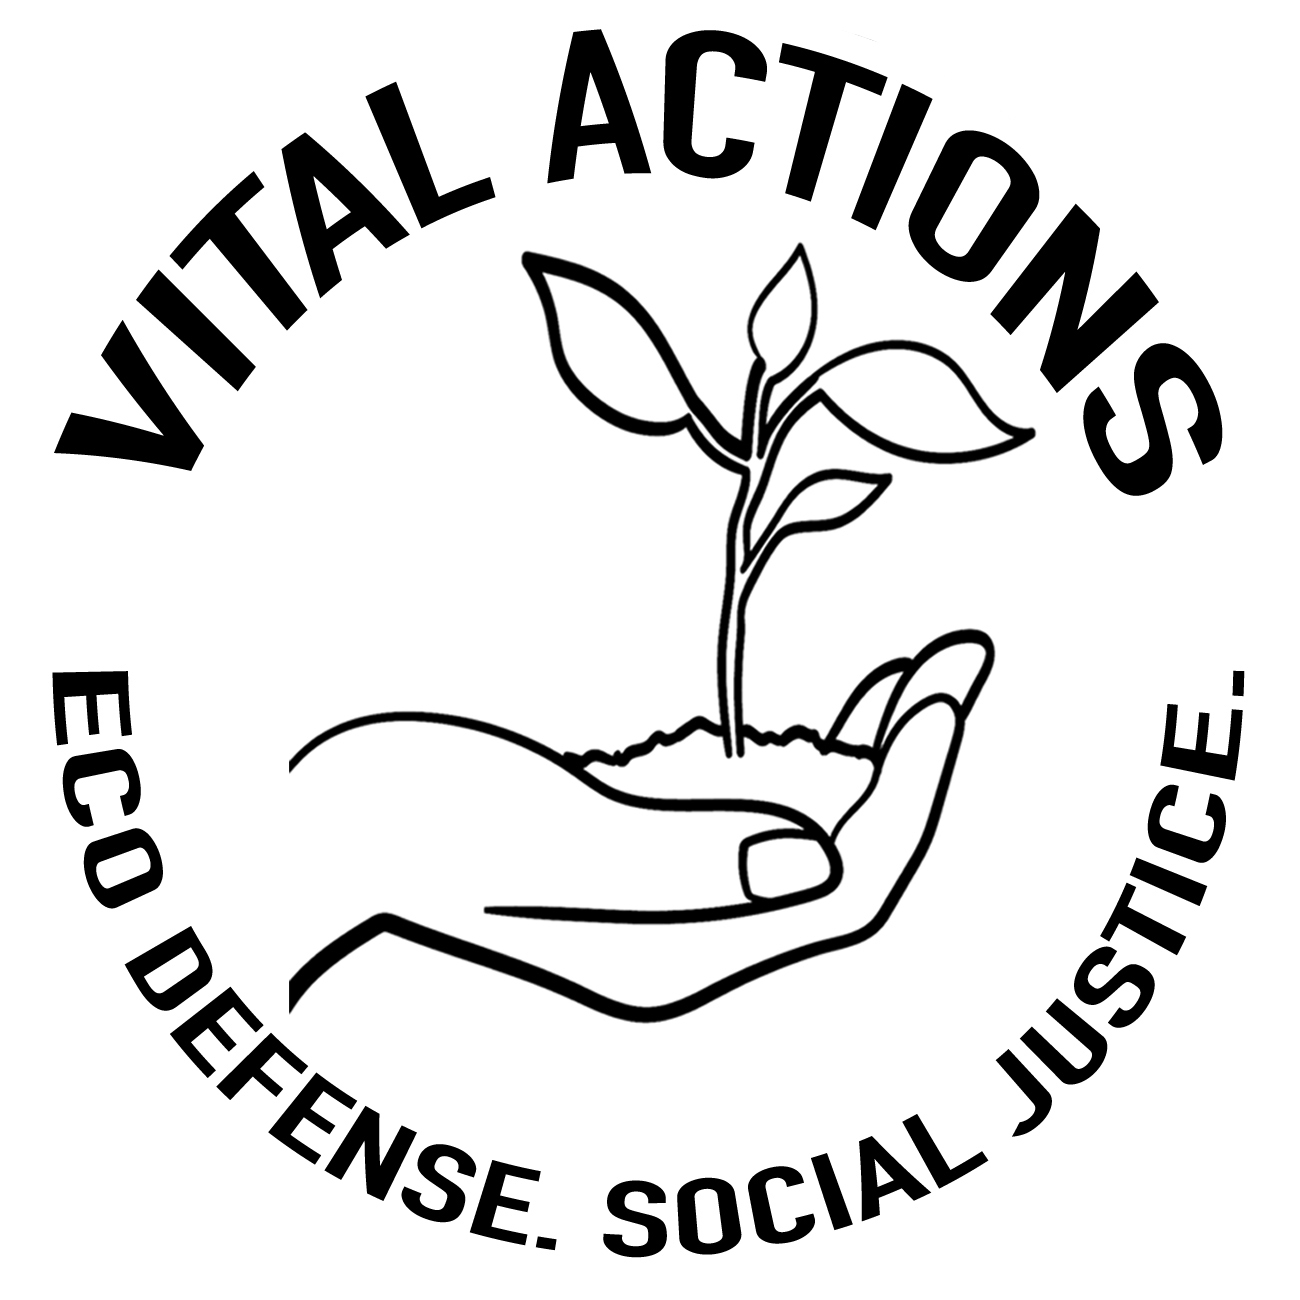 The Vital Action Project Conservation. Liberation.